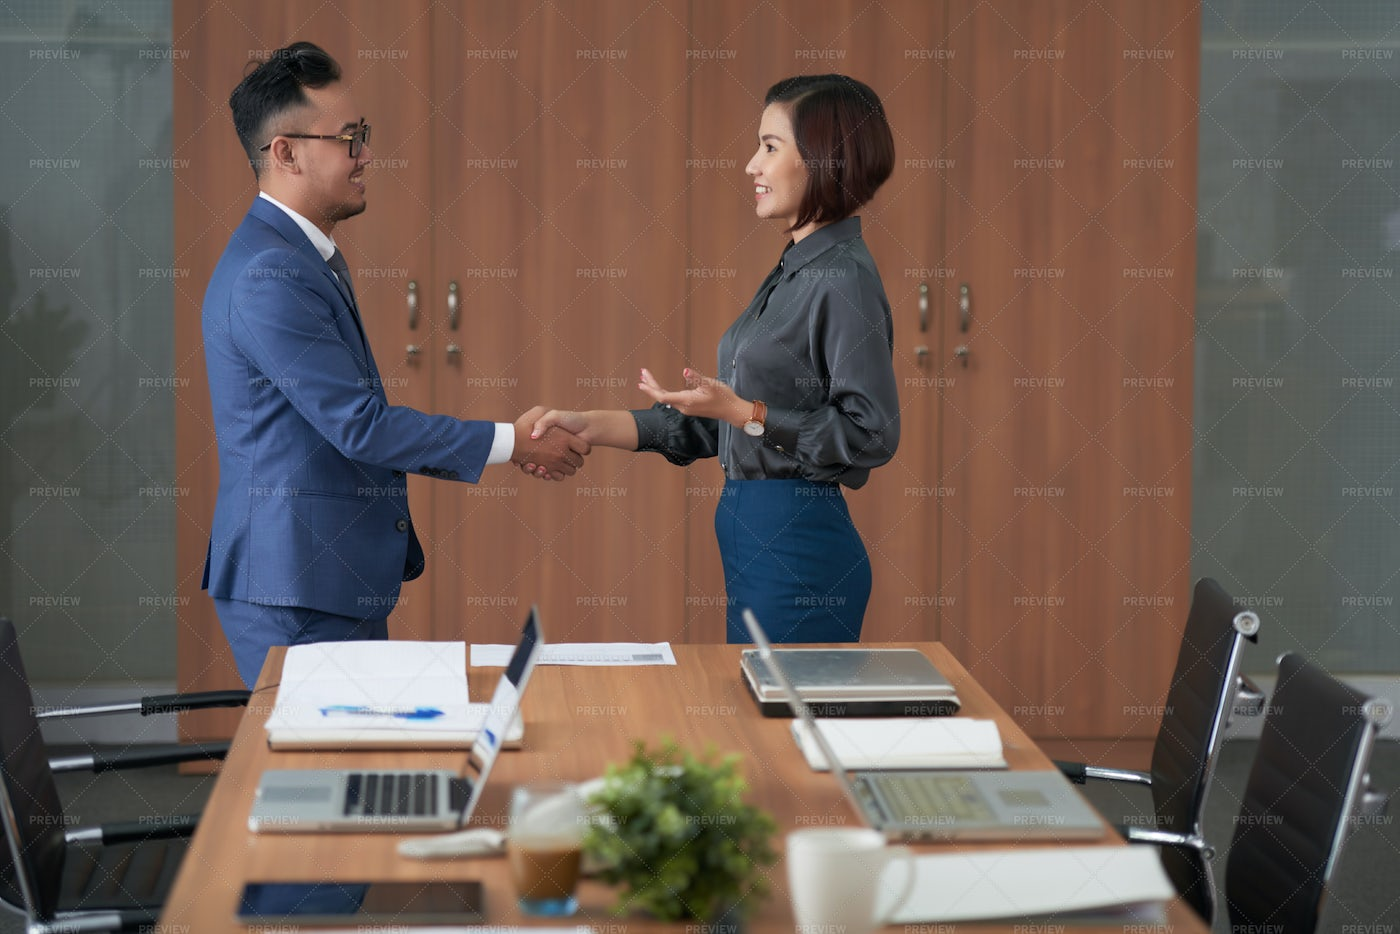 Business Partners Shaking Hands At: Stock Photos